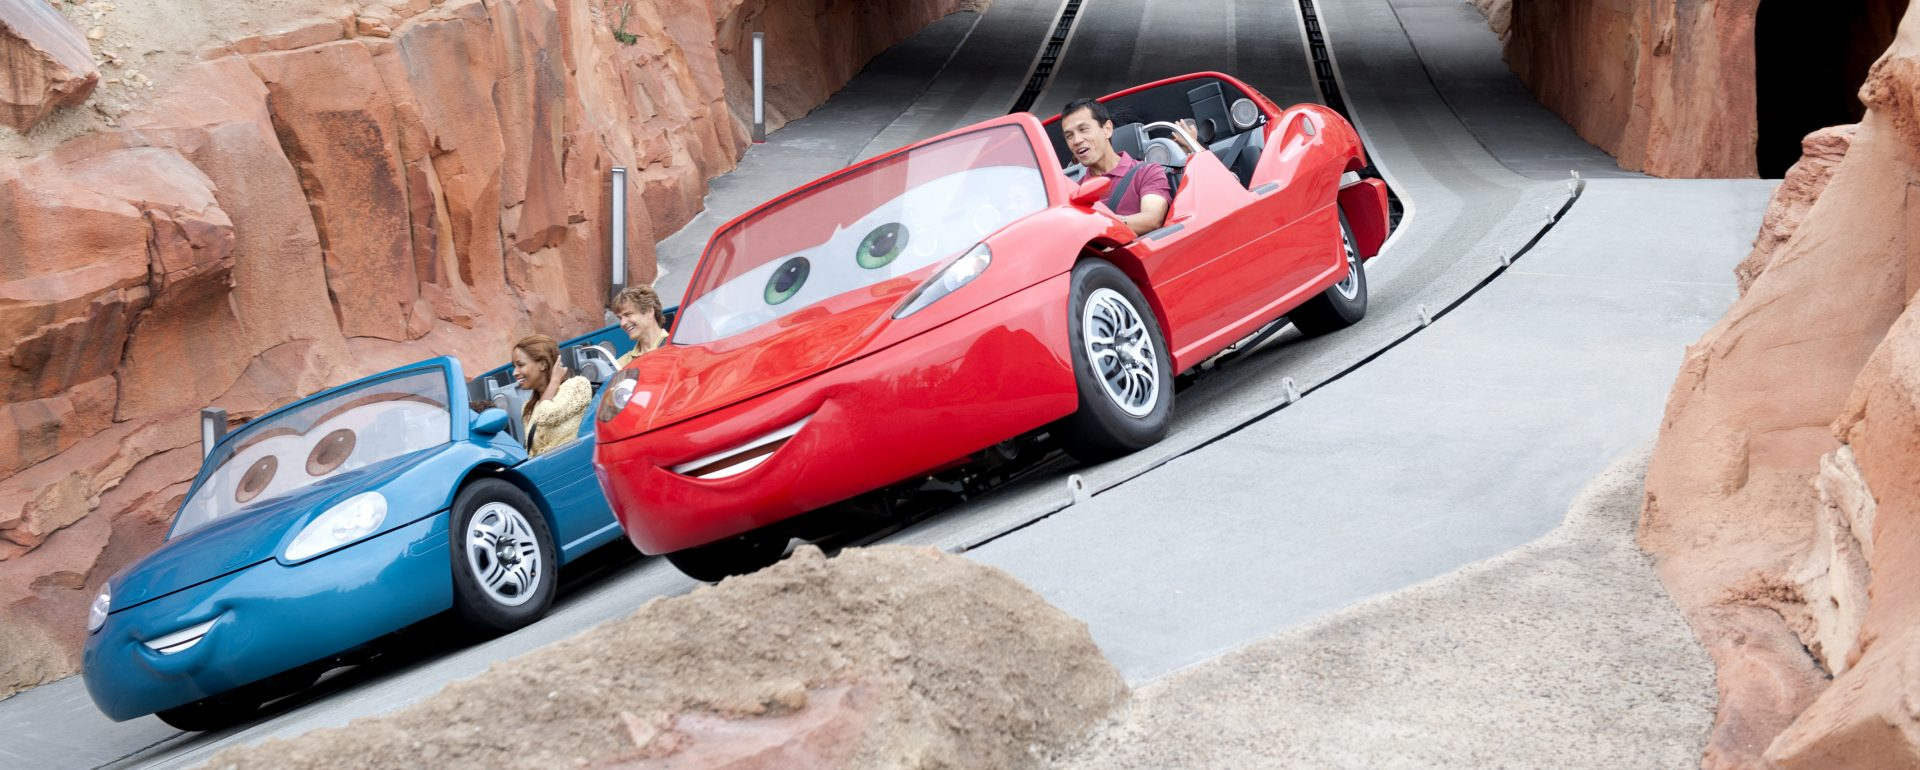 disney california adventure rides near Park Vue Inn